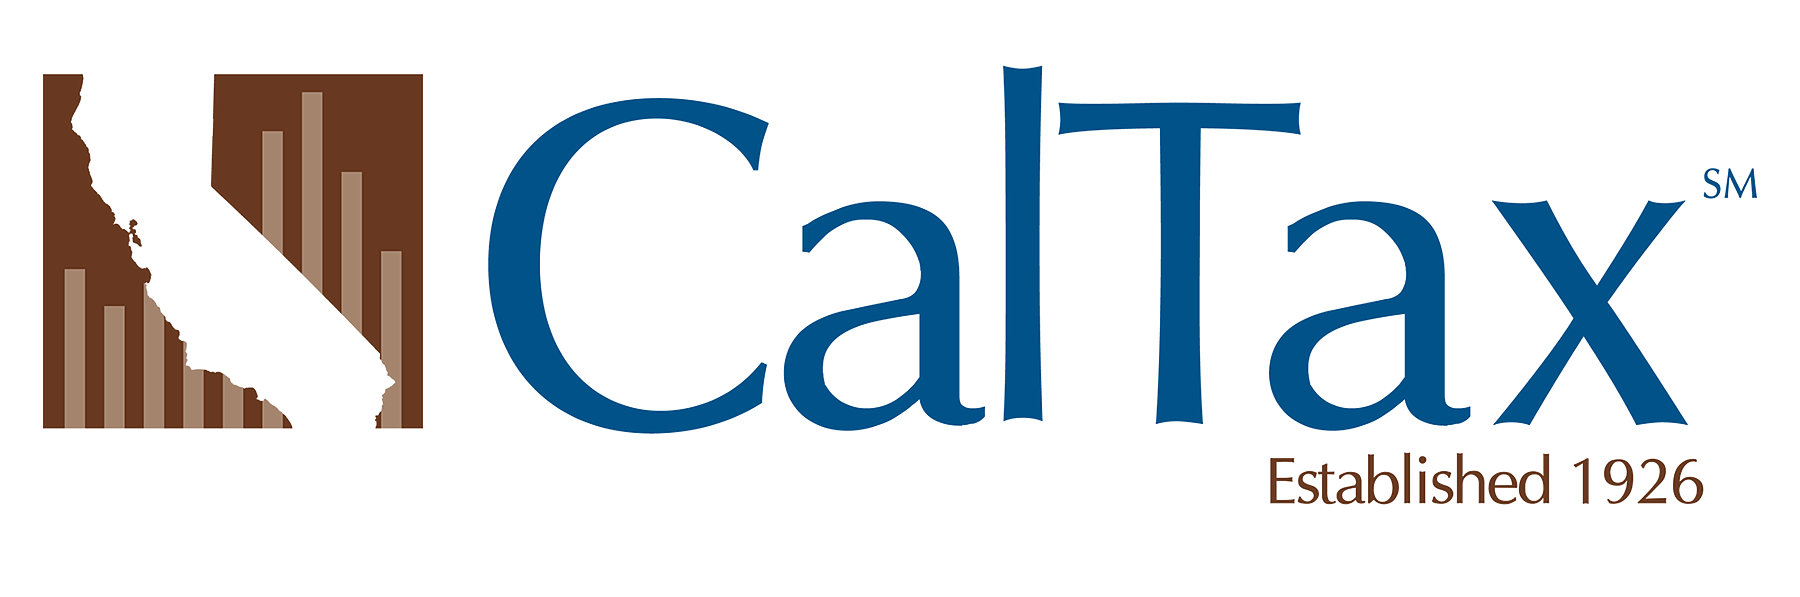 California Taxpayers Association: CALIFORNIA TAXPAYERS ASSOCIATION - PROTECT TAXPAYERS RIGHTS